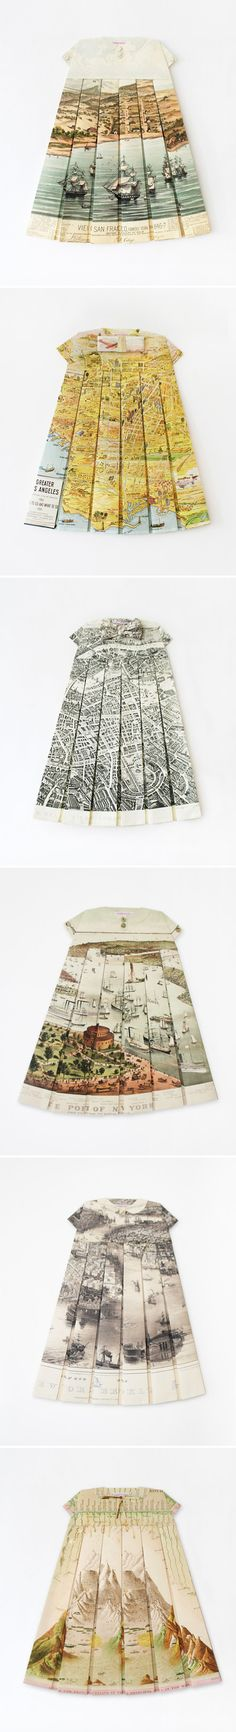 Les Robes Geographiques by ELISABETH LECOURT - vintage maps folded into tiny dresses  http://www.elisabethlecourt.com/